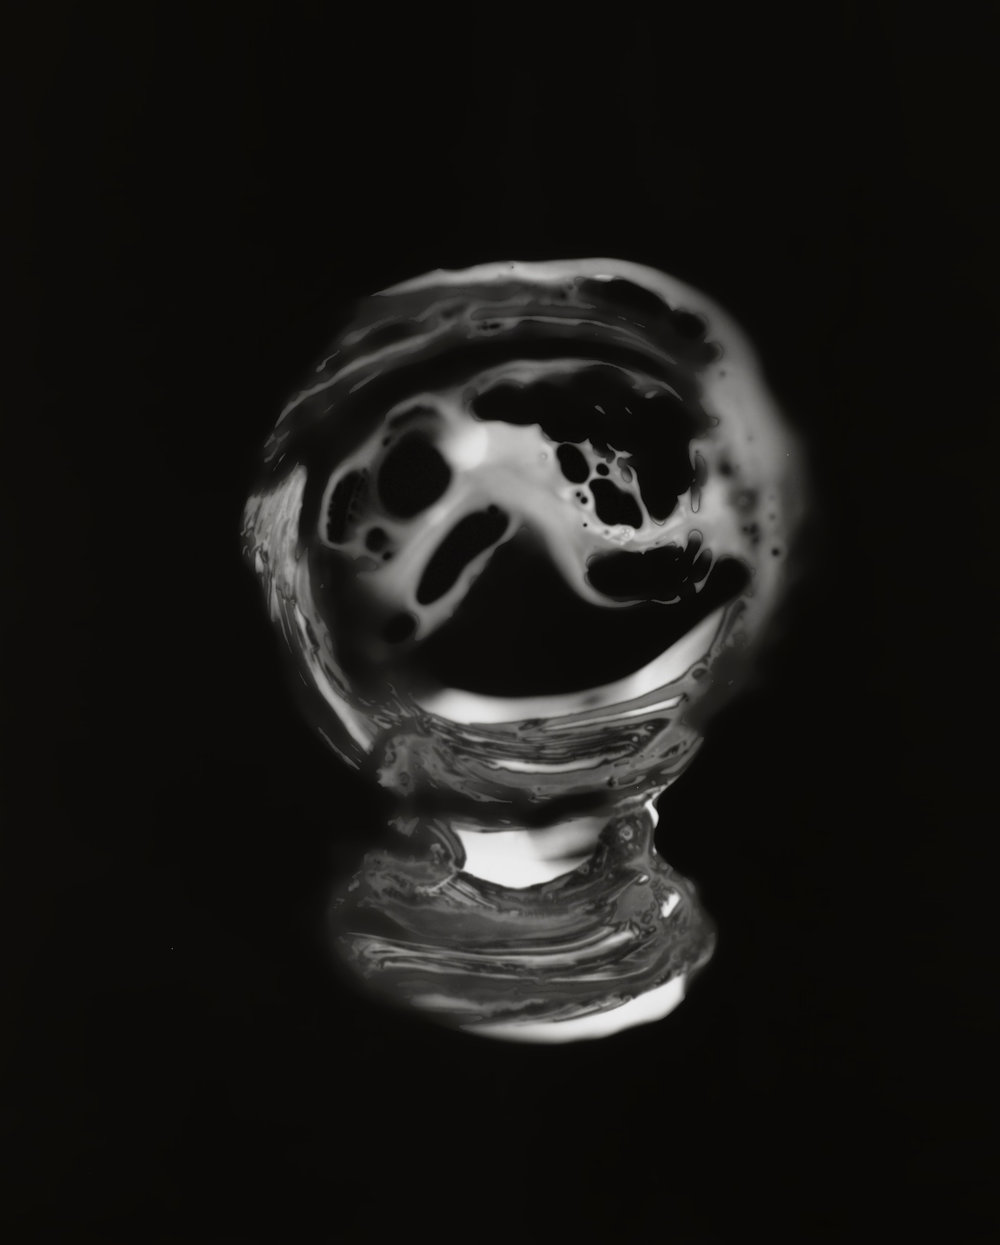 Michelle Charles, Crystal Ball Series 3, No.2, 2012-2013, Gelatin silver print, 16 x 20 inches (40.64 x 50.8 cm). Courtesy of the artist and Jane Lombard Gallery.